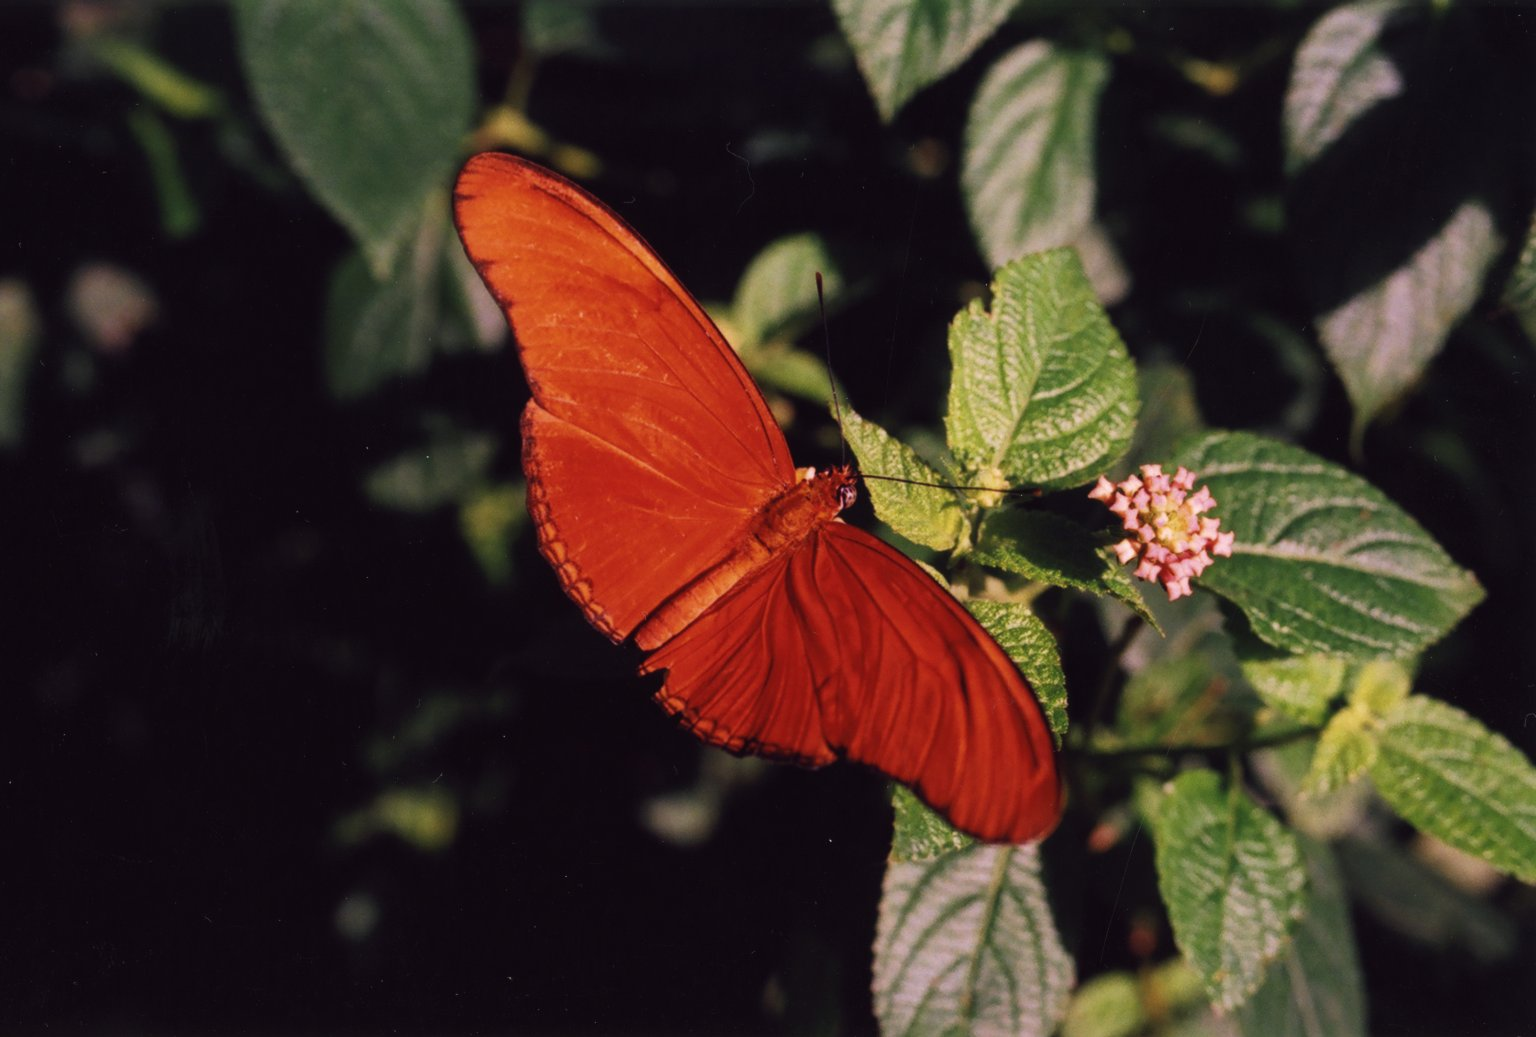 Image of orange and white butterfly on flower